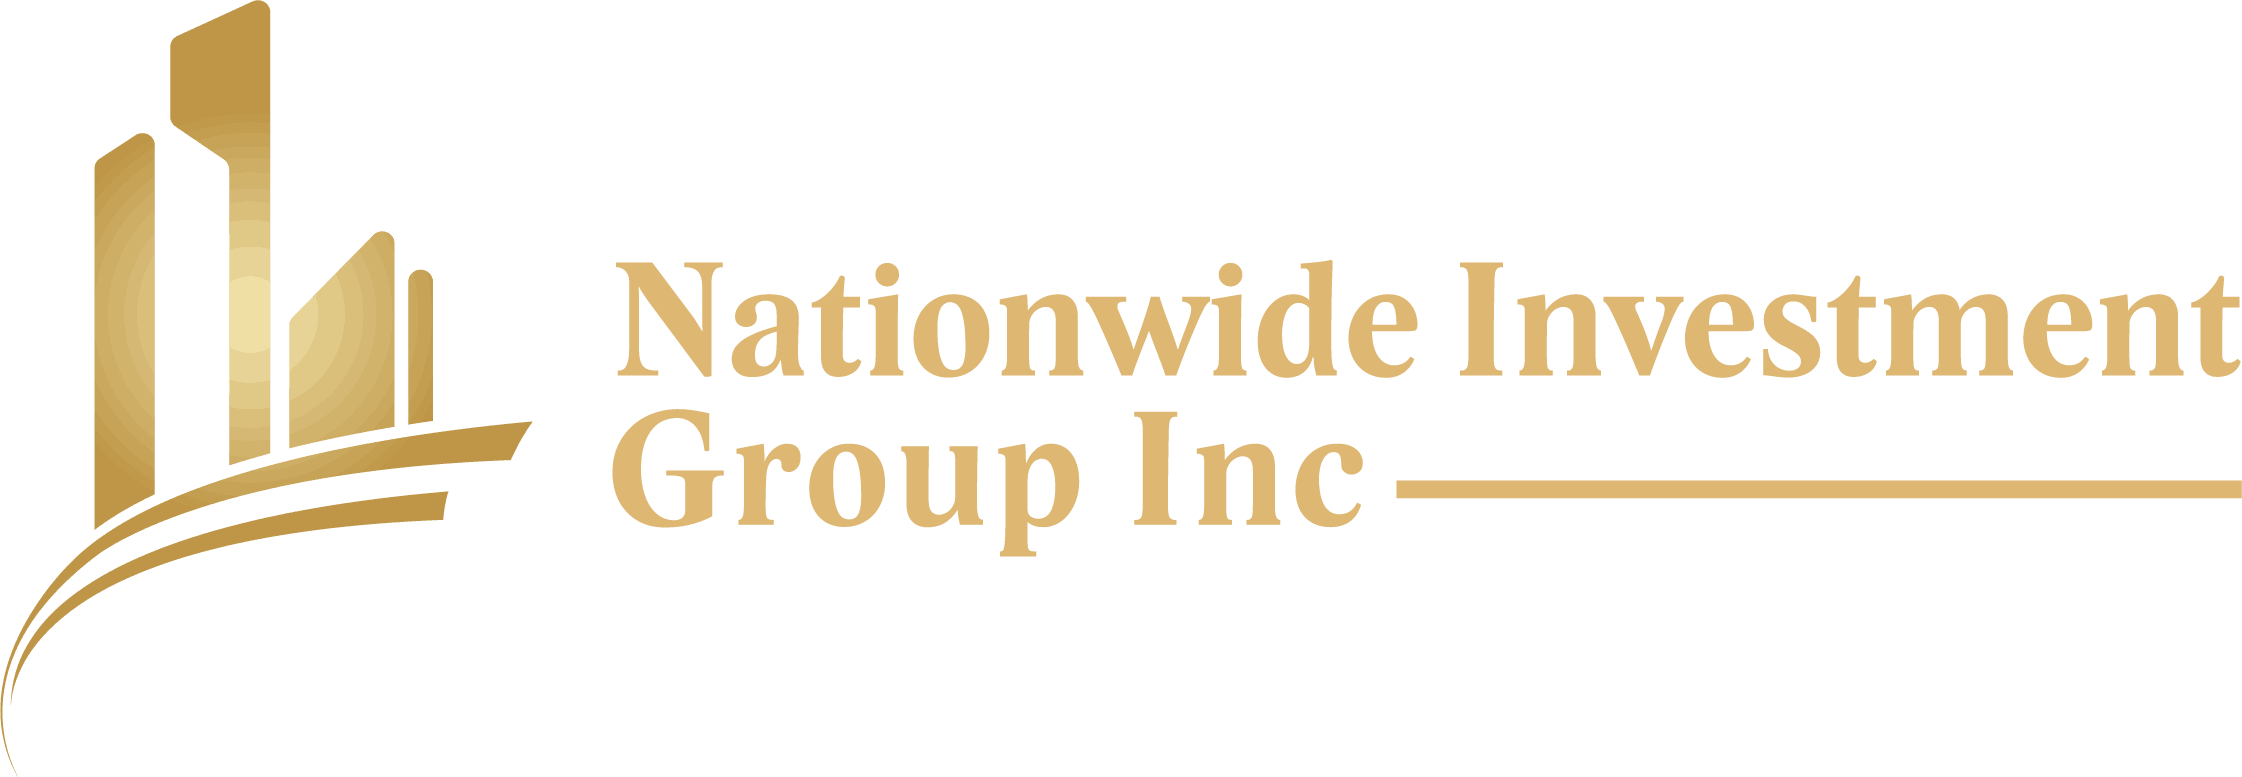 Nationwide Investment Group Inc.